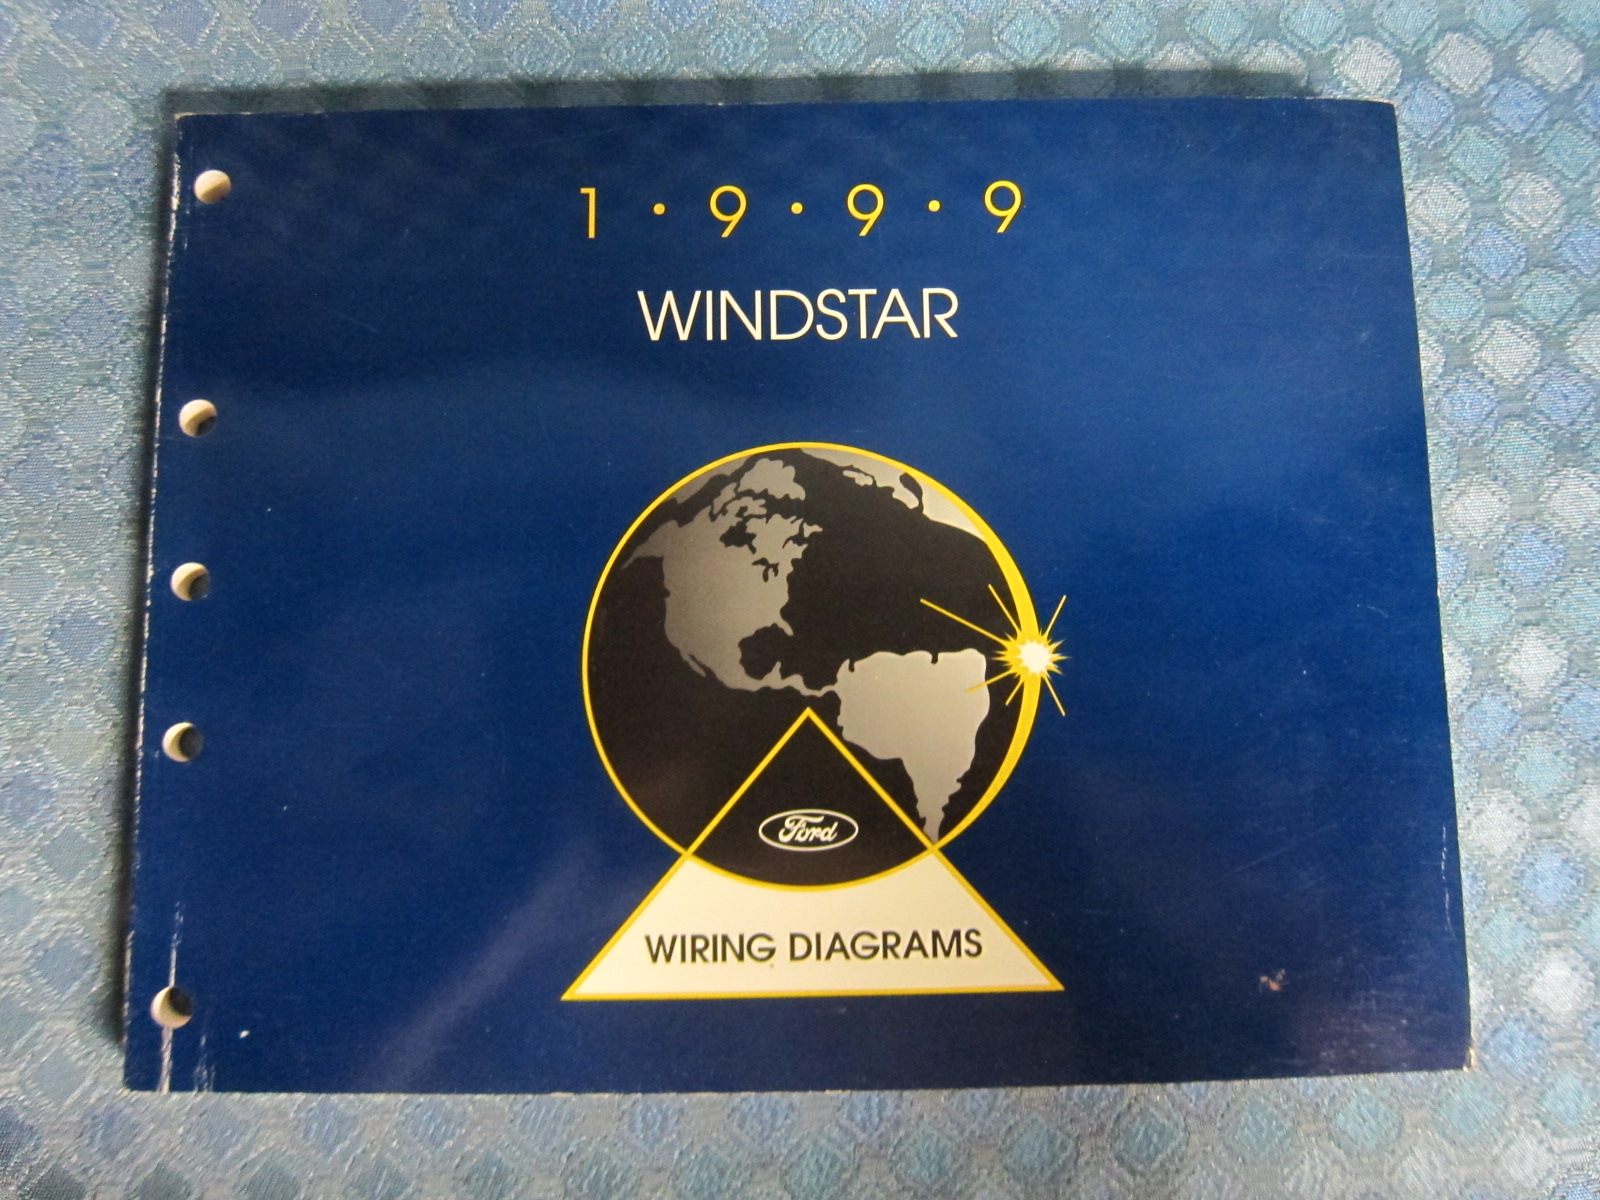 1999    Ford       Windstar    Original OEM    Wiring       Diagrams    Manual  NOS Texas Parts  LLC  Antique Auto Parts